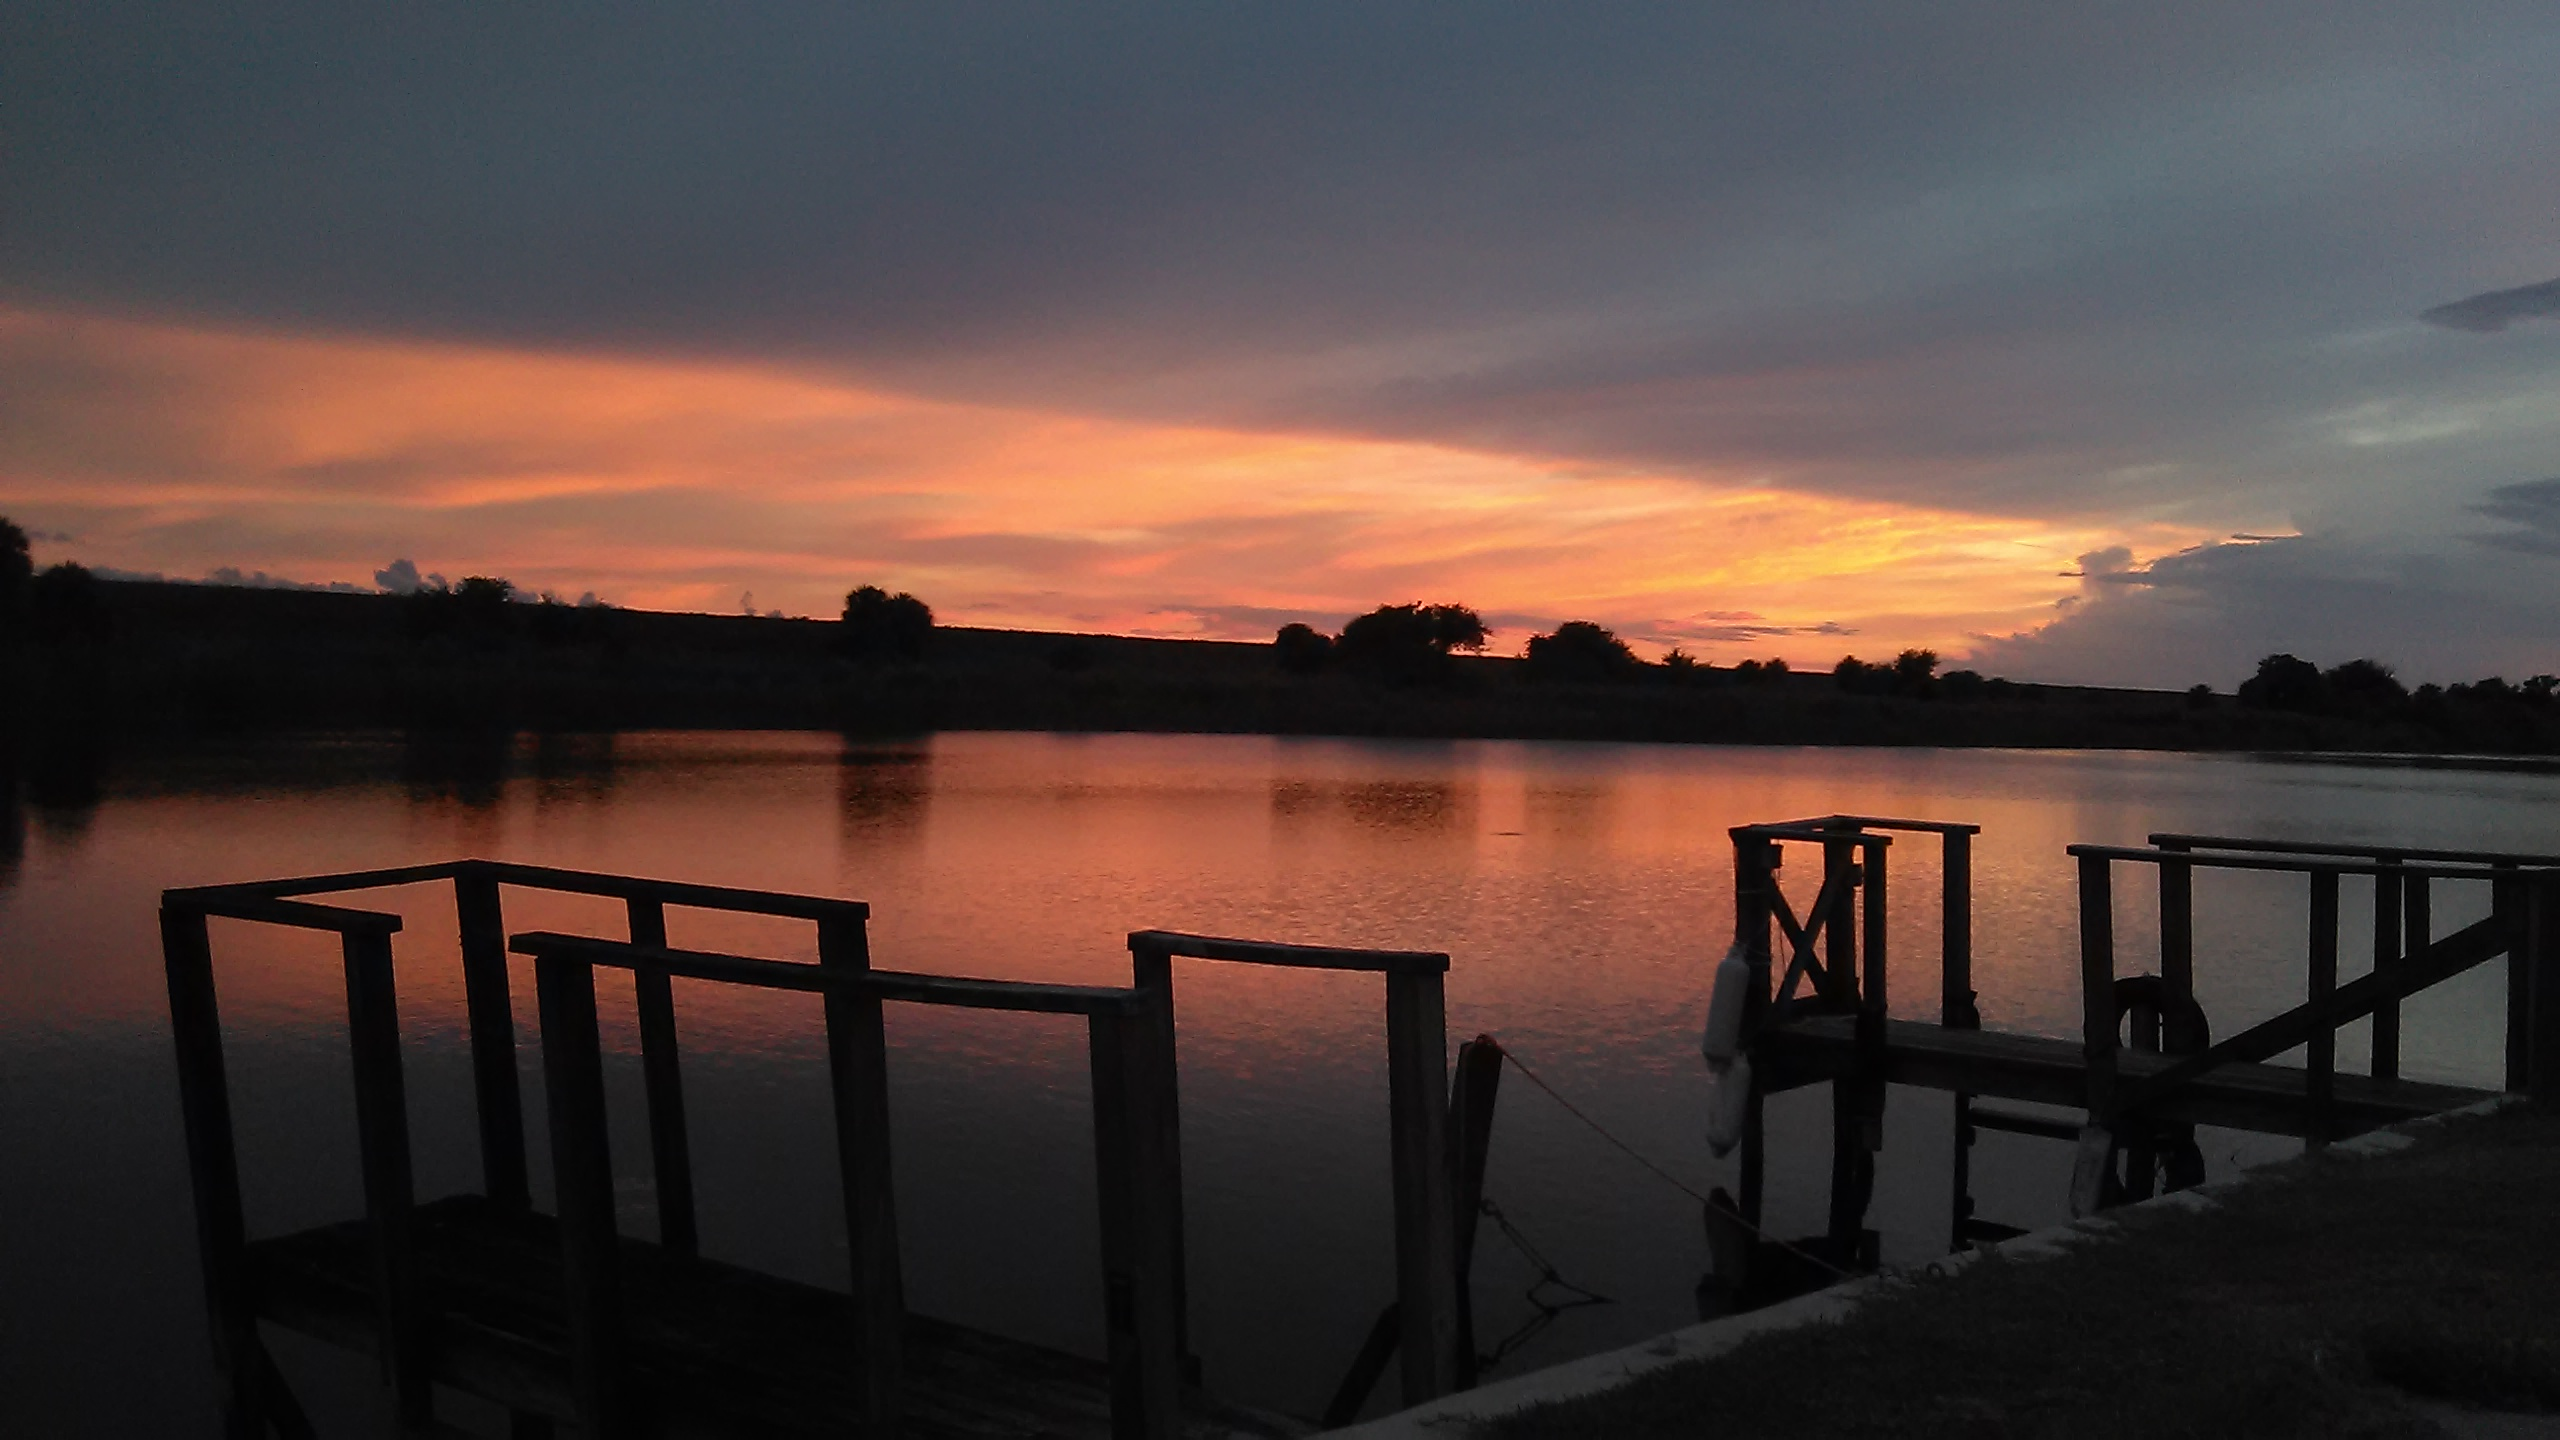 South central Floridas famous sunsets over the rim canal next to my tiny house